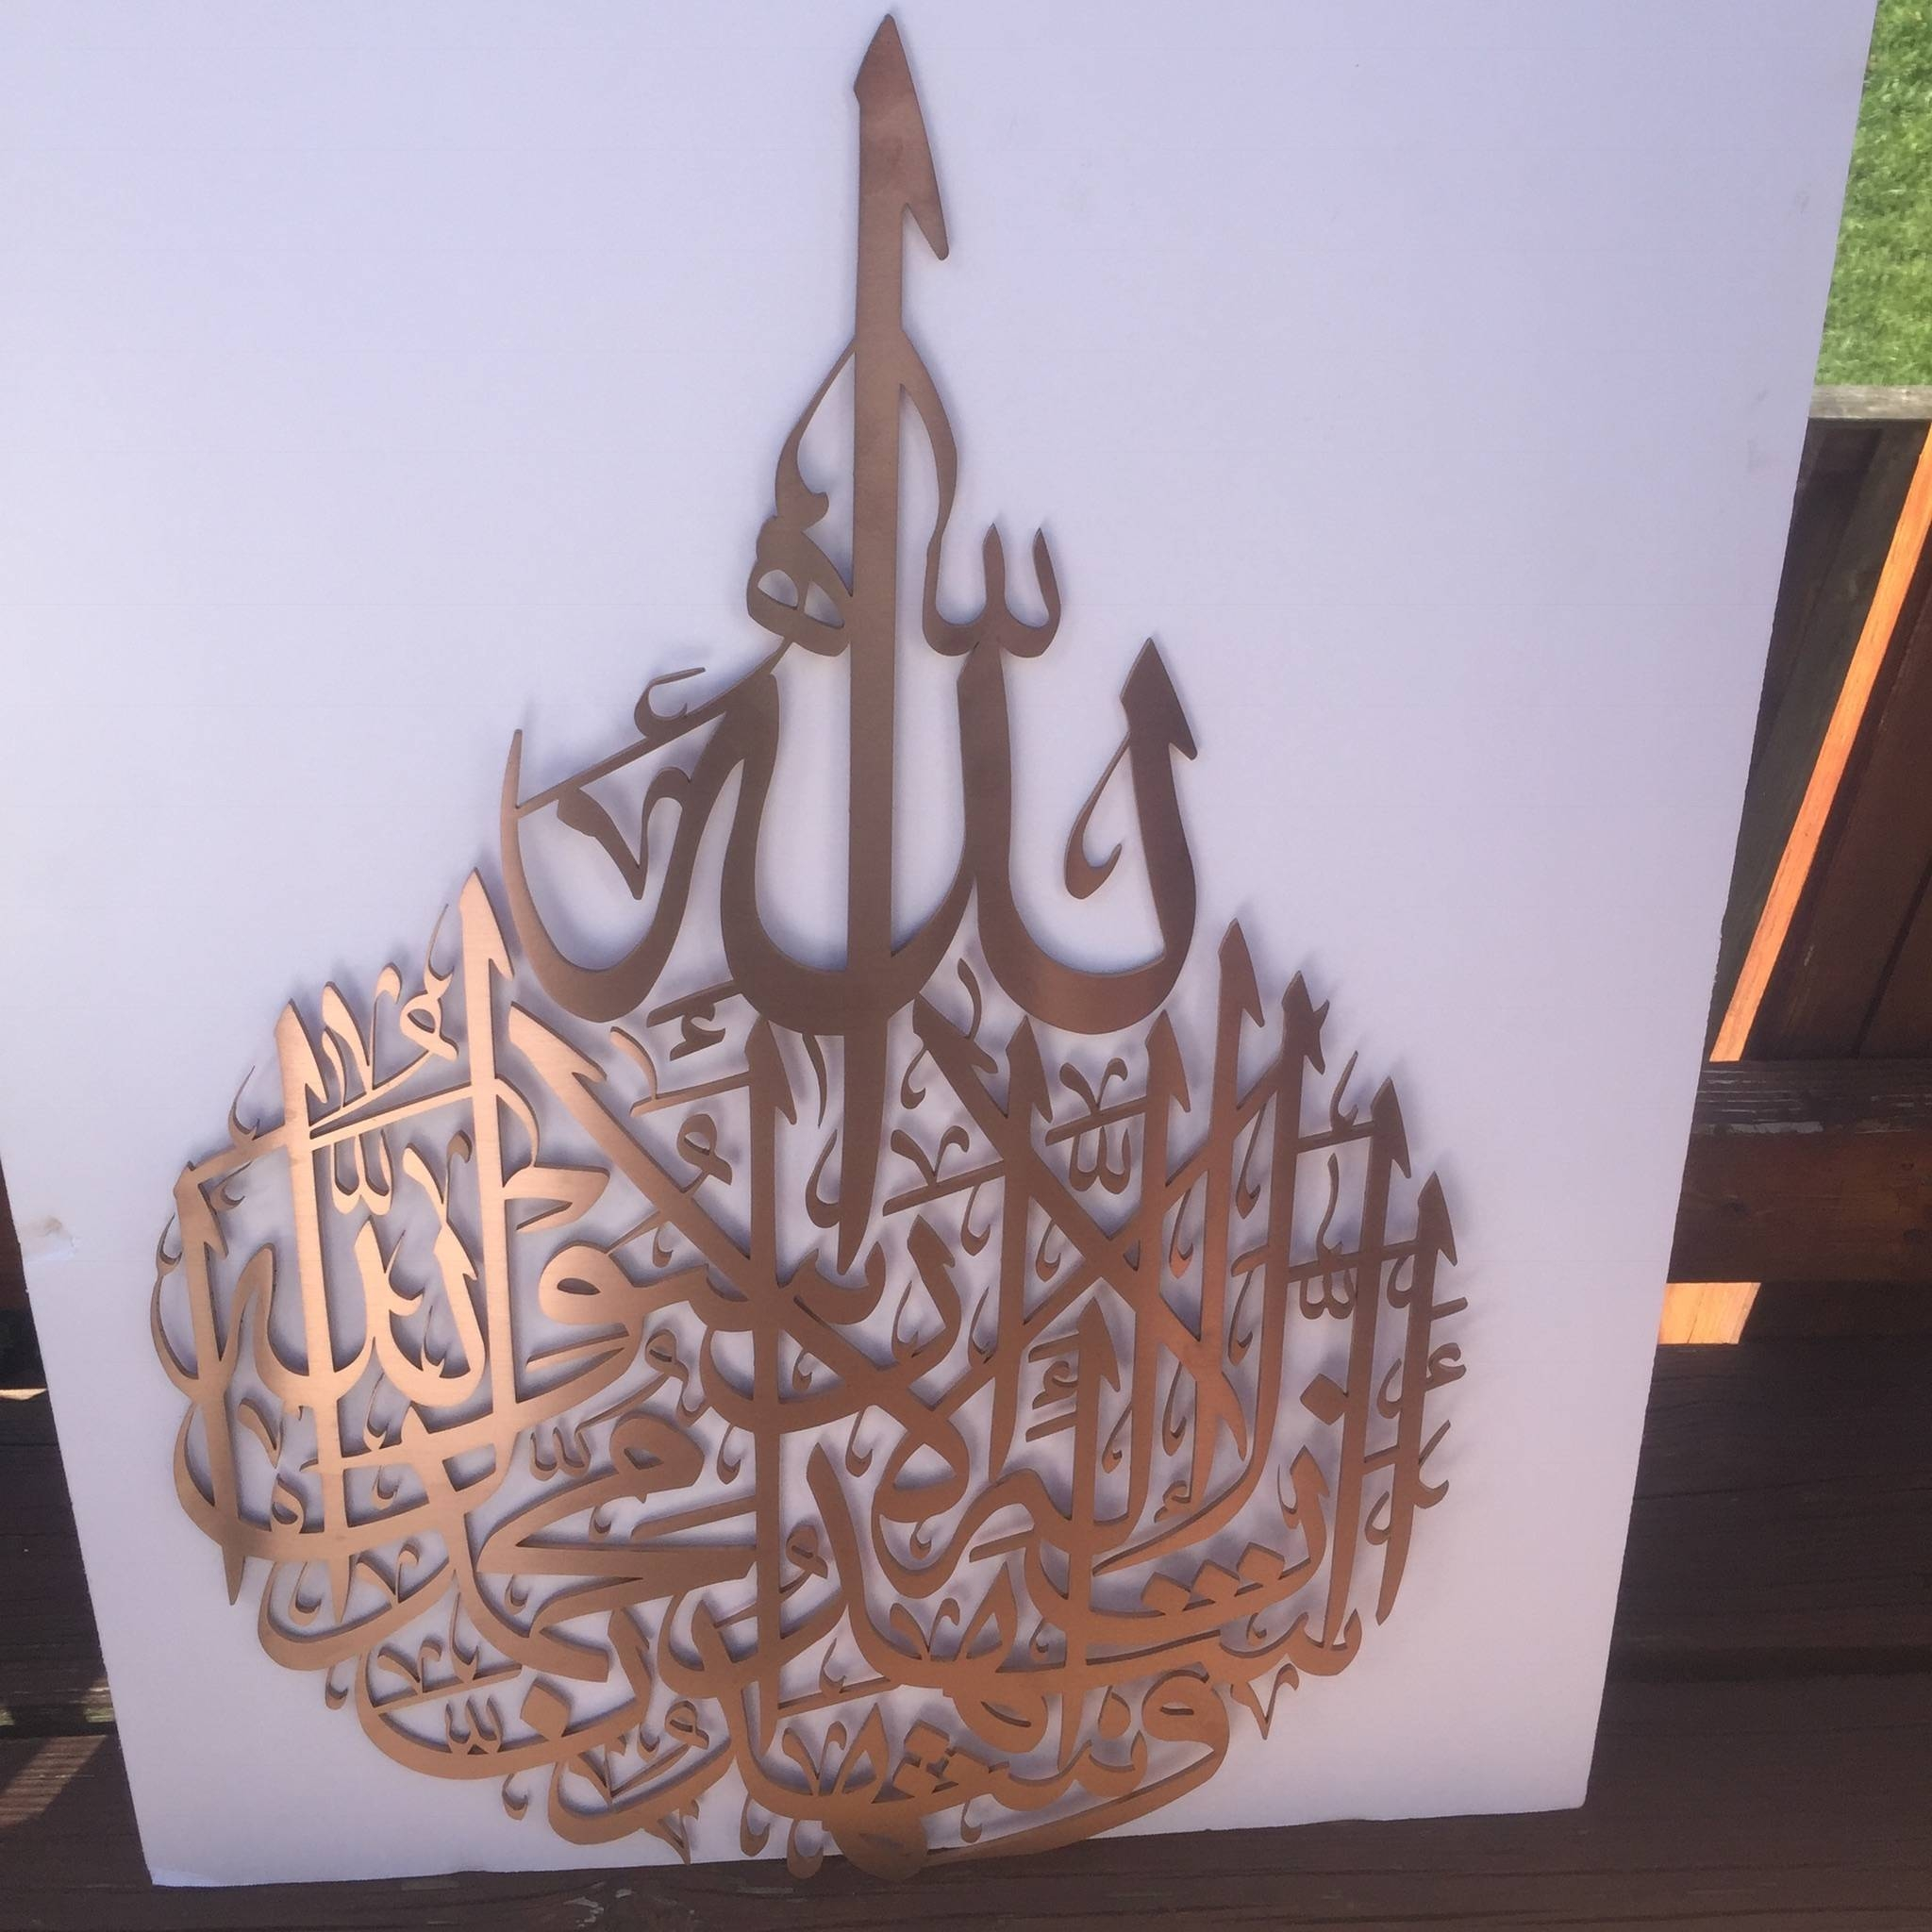 Shahada / Kalima Islamic Calligraphy Modern Islamic Stainless In 2017 Fretwork Wall Art (View 22 of 25)